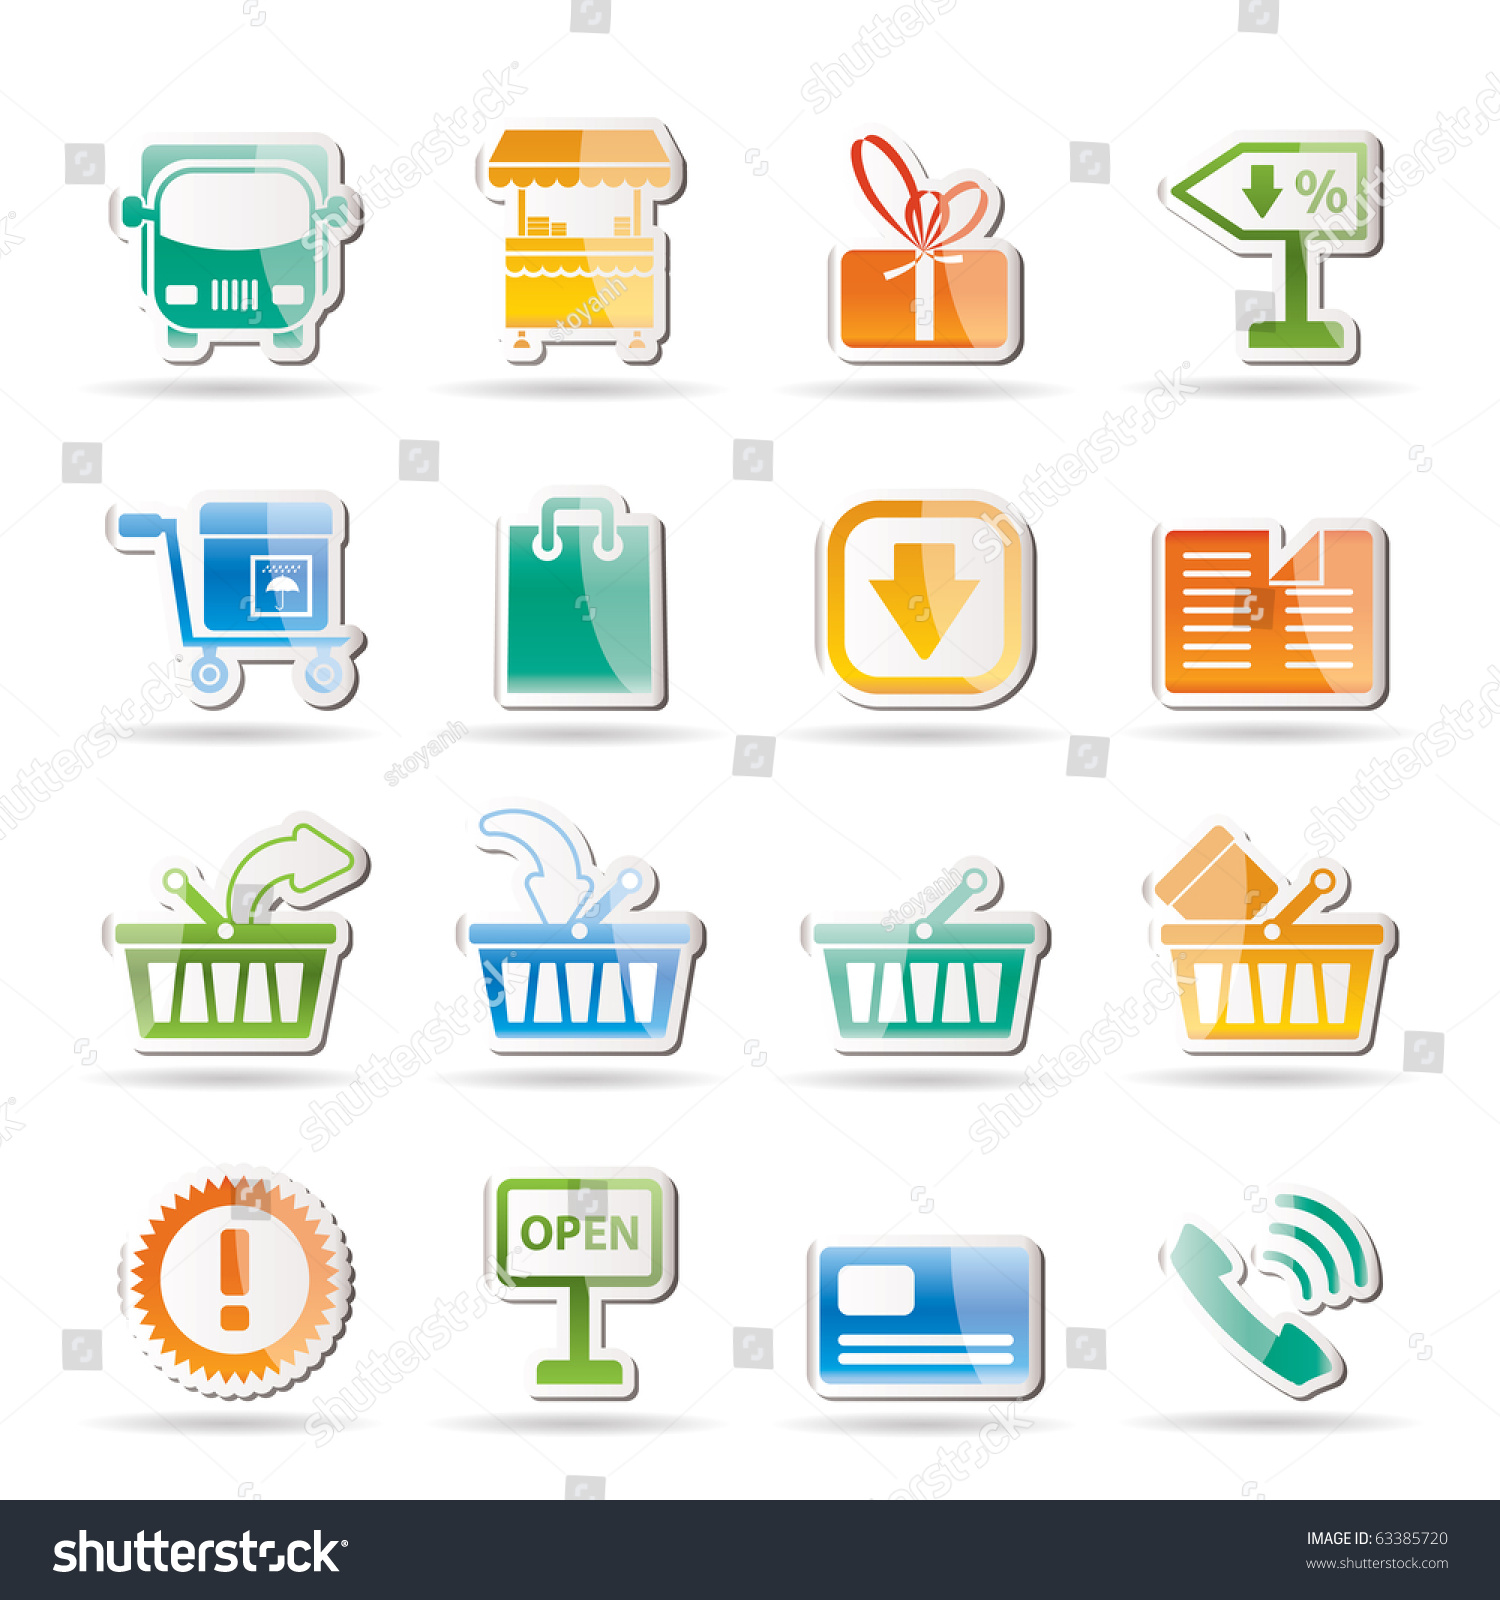 Real Vista Networking Icons - Artwork by Iconshock | Application ...